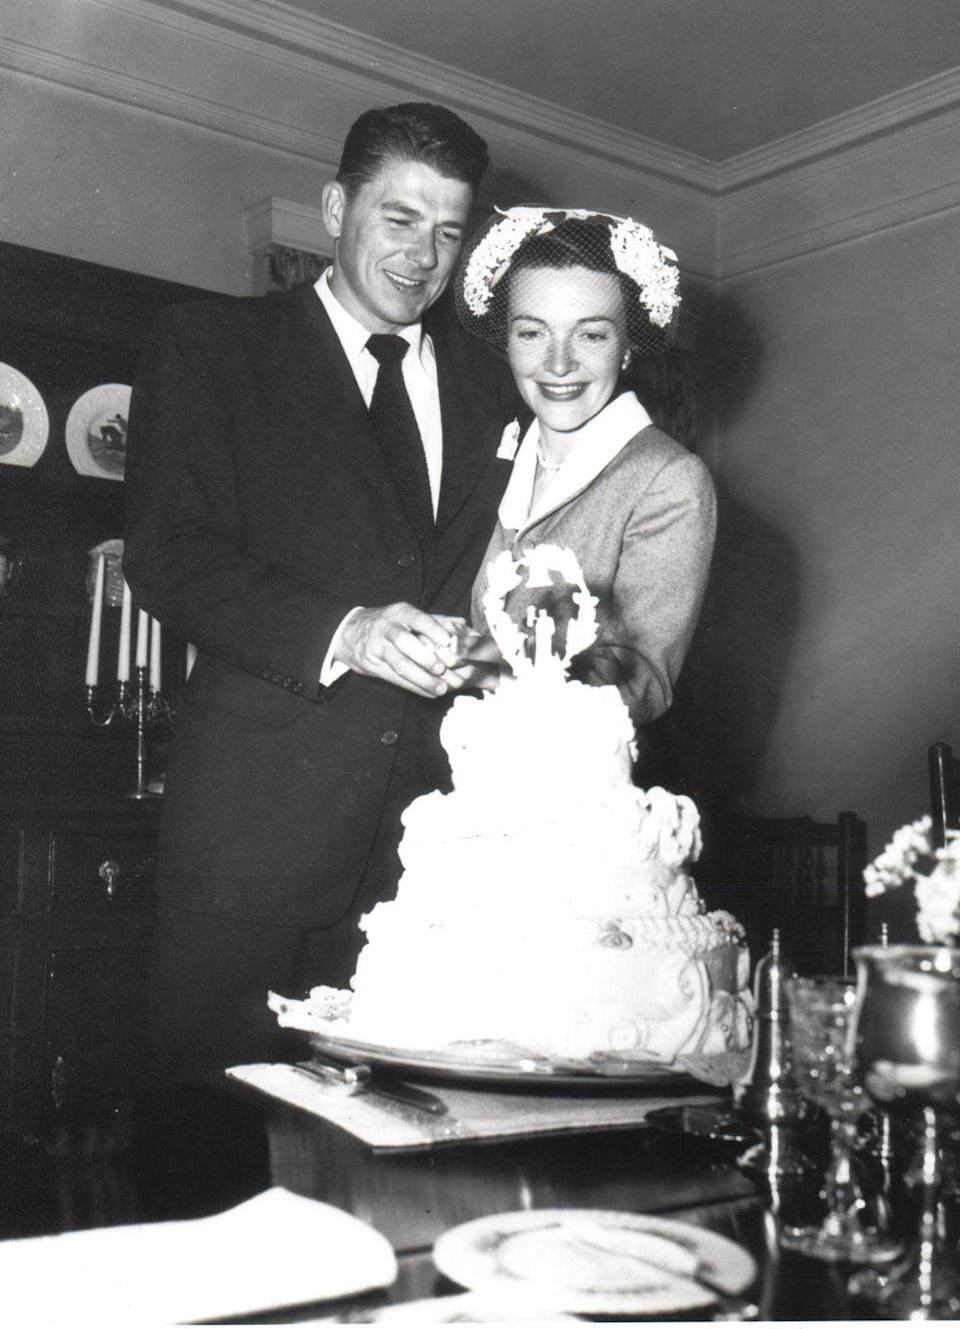 <p>At their wedding, a young Ronald and Nancy Reagan cut their cake. </p>